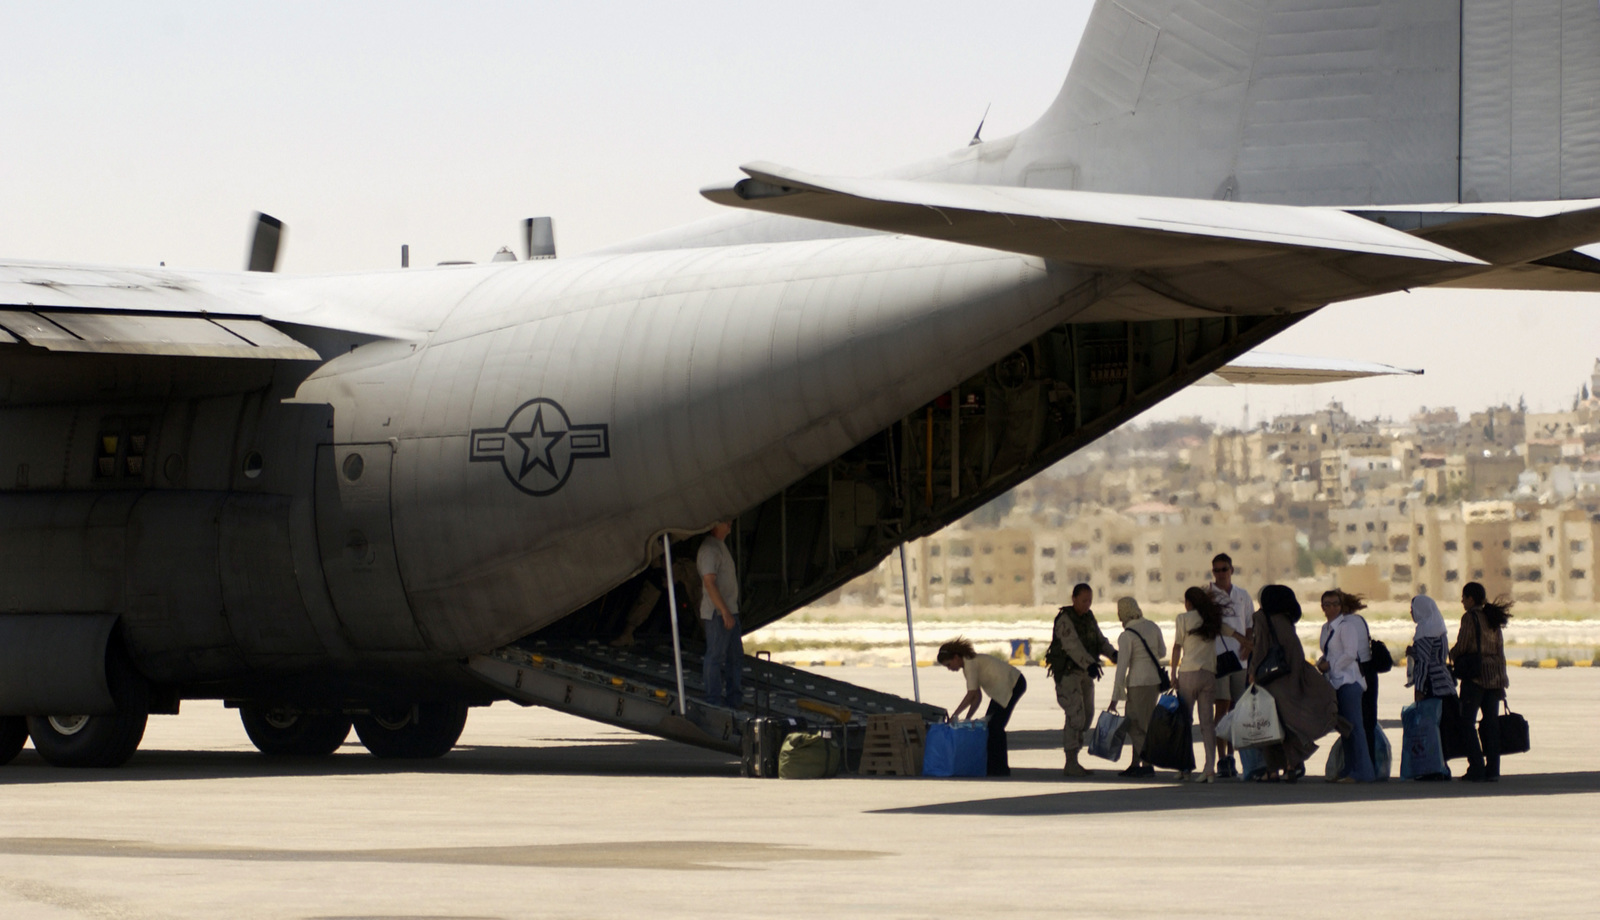 Jordanian Female Recruits for the Iraqi Army, board a US Air Force (USAF) C-130 Hercules aircraft at Amman, Jordan, enroute to Baghdad, Iraq, where they will report for duty in the New Iraqi Army (NIA)